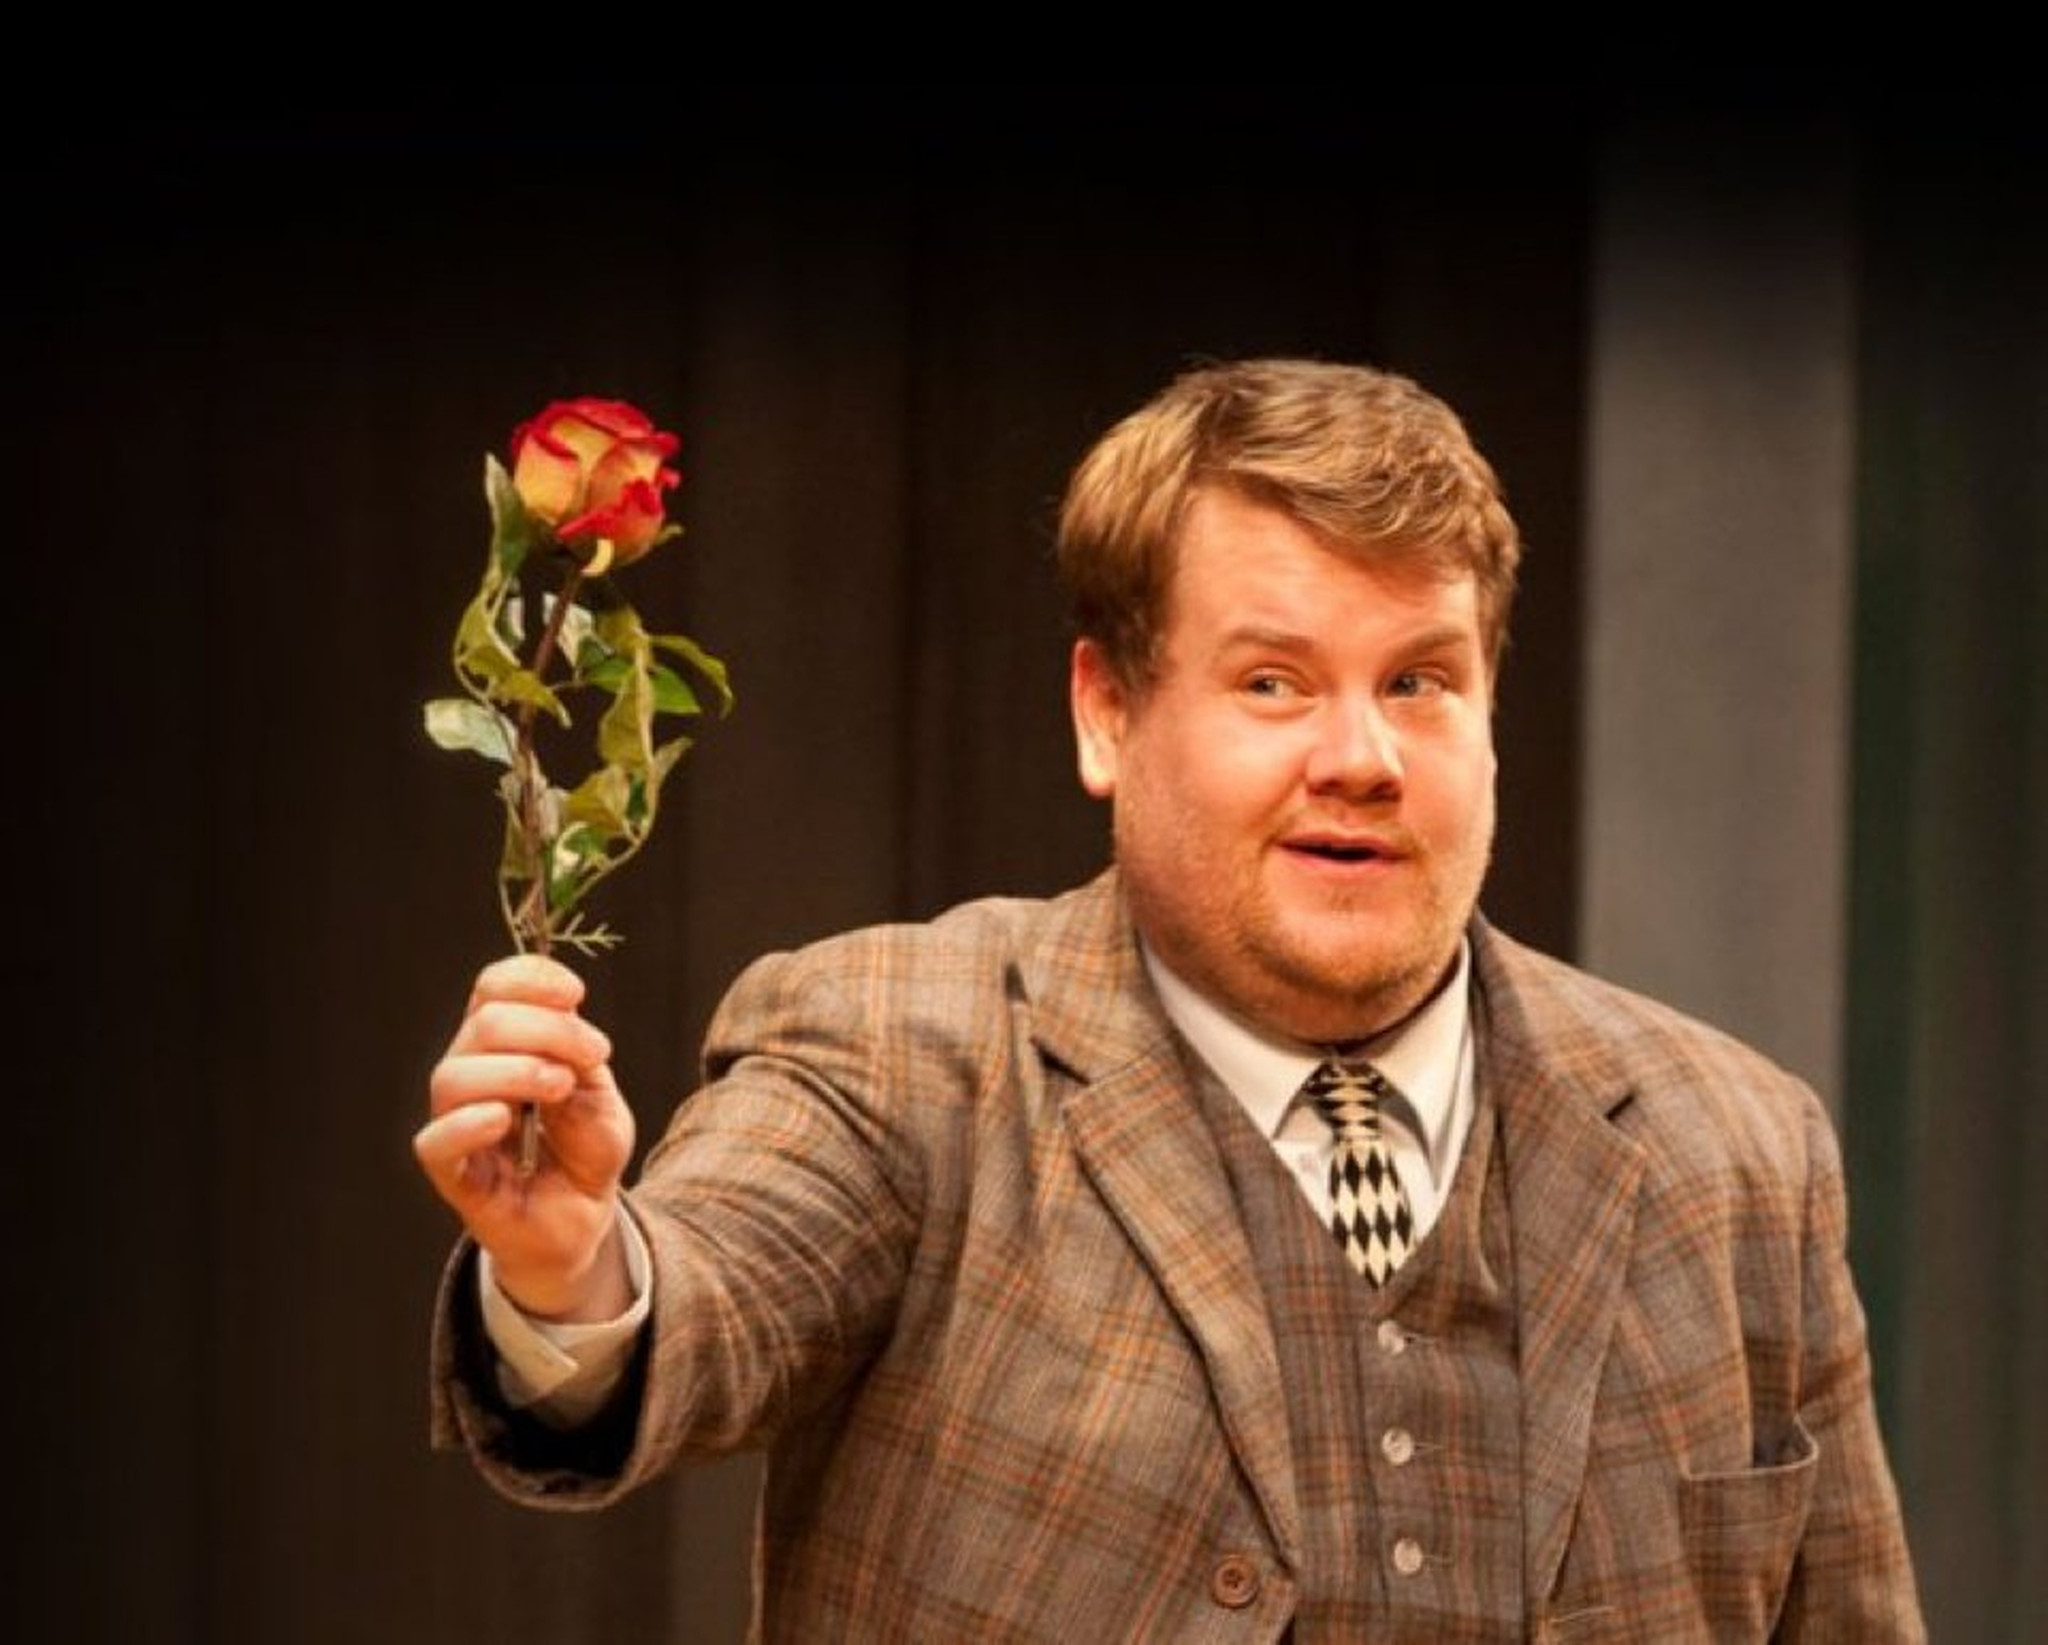 REVIEW: Filmed vesion of James Corden's 'One Man, Two Guvnors' proves laughter is the best medicine